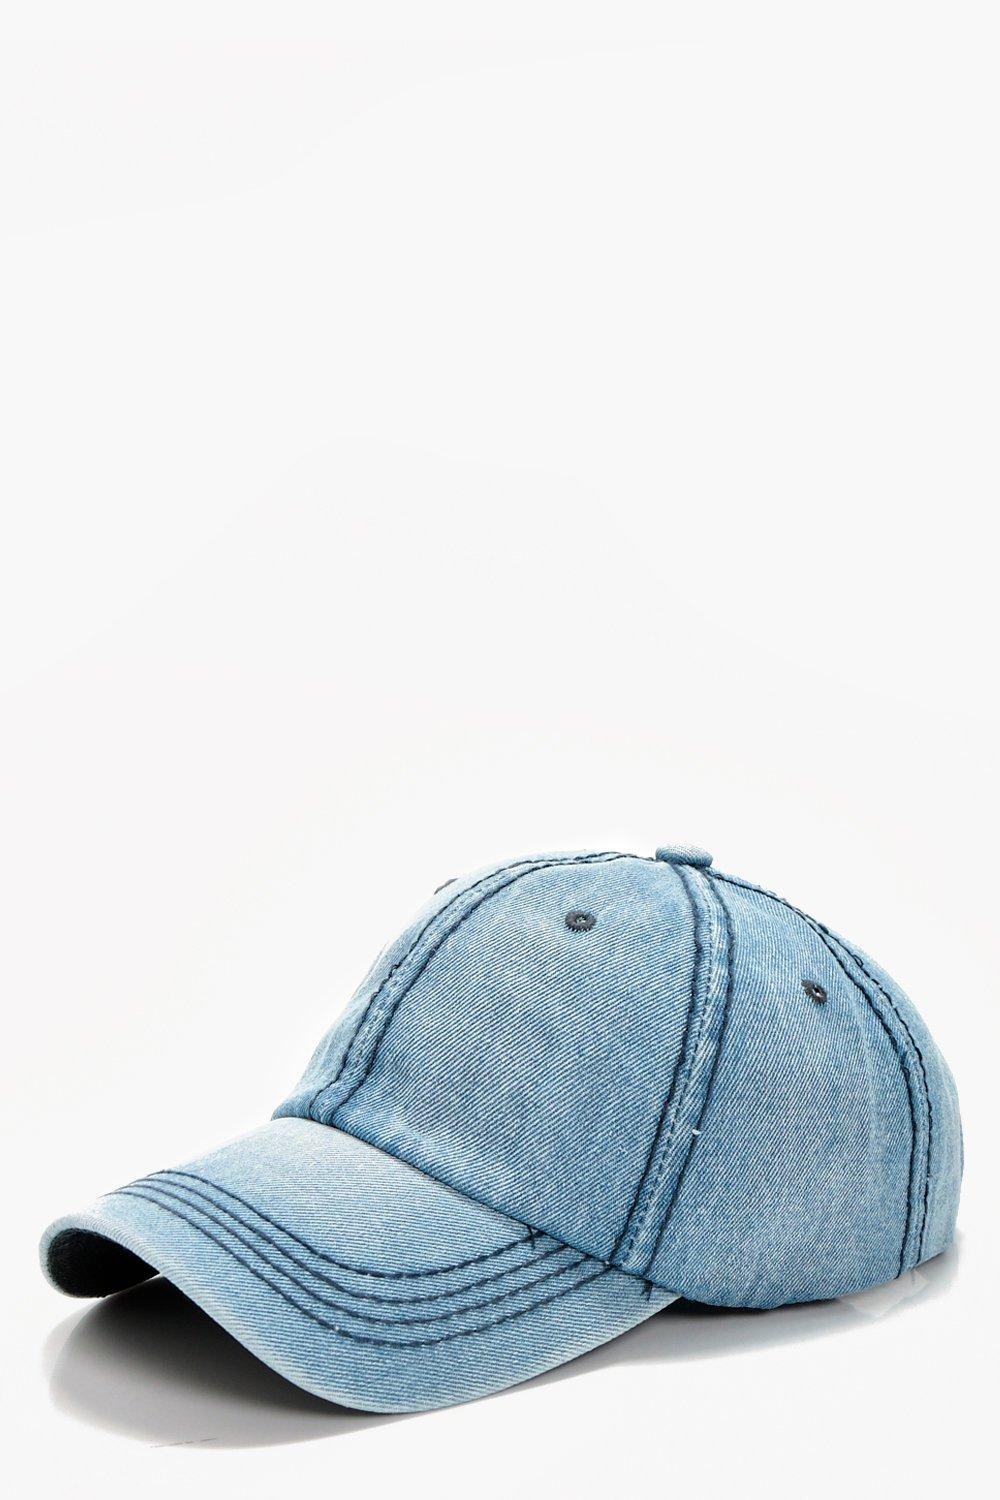 Denim Baseball cap - baby blue - Abigail Denim Bas